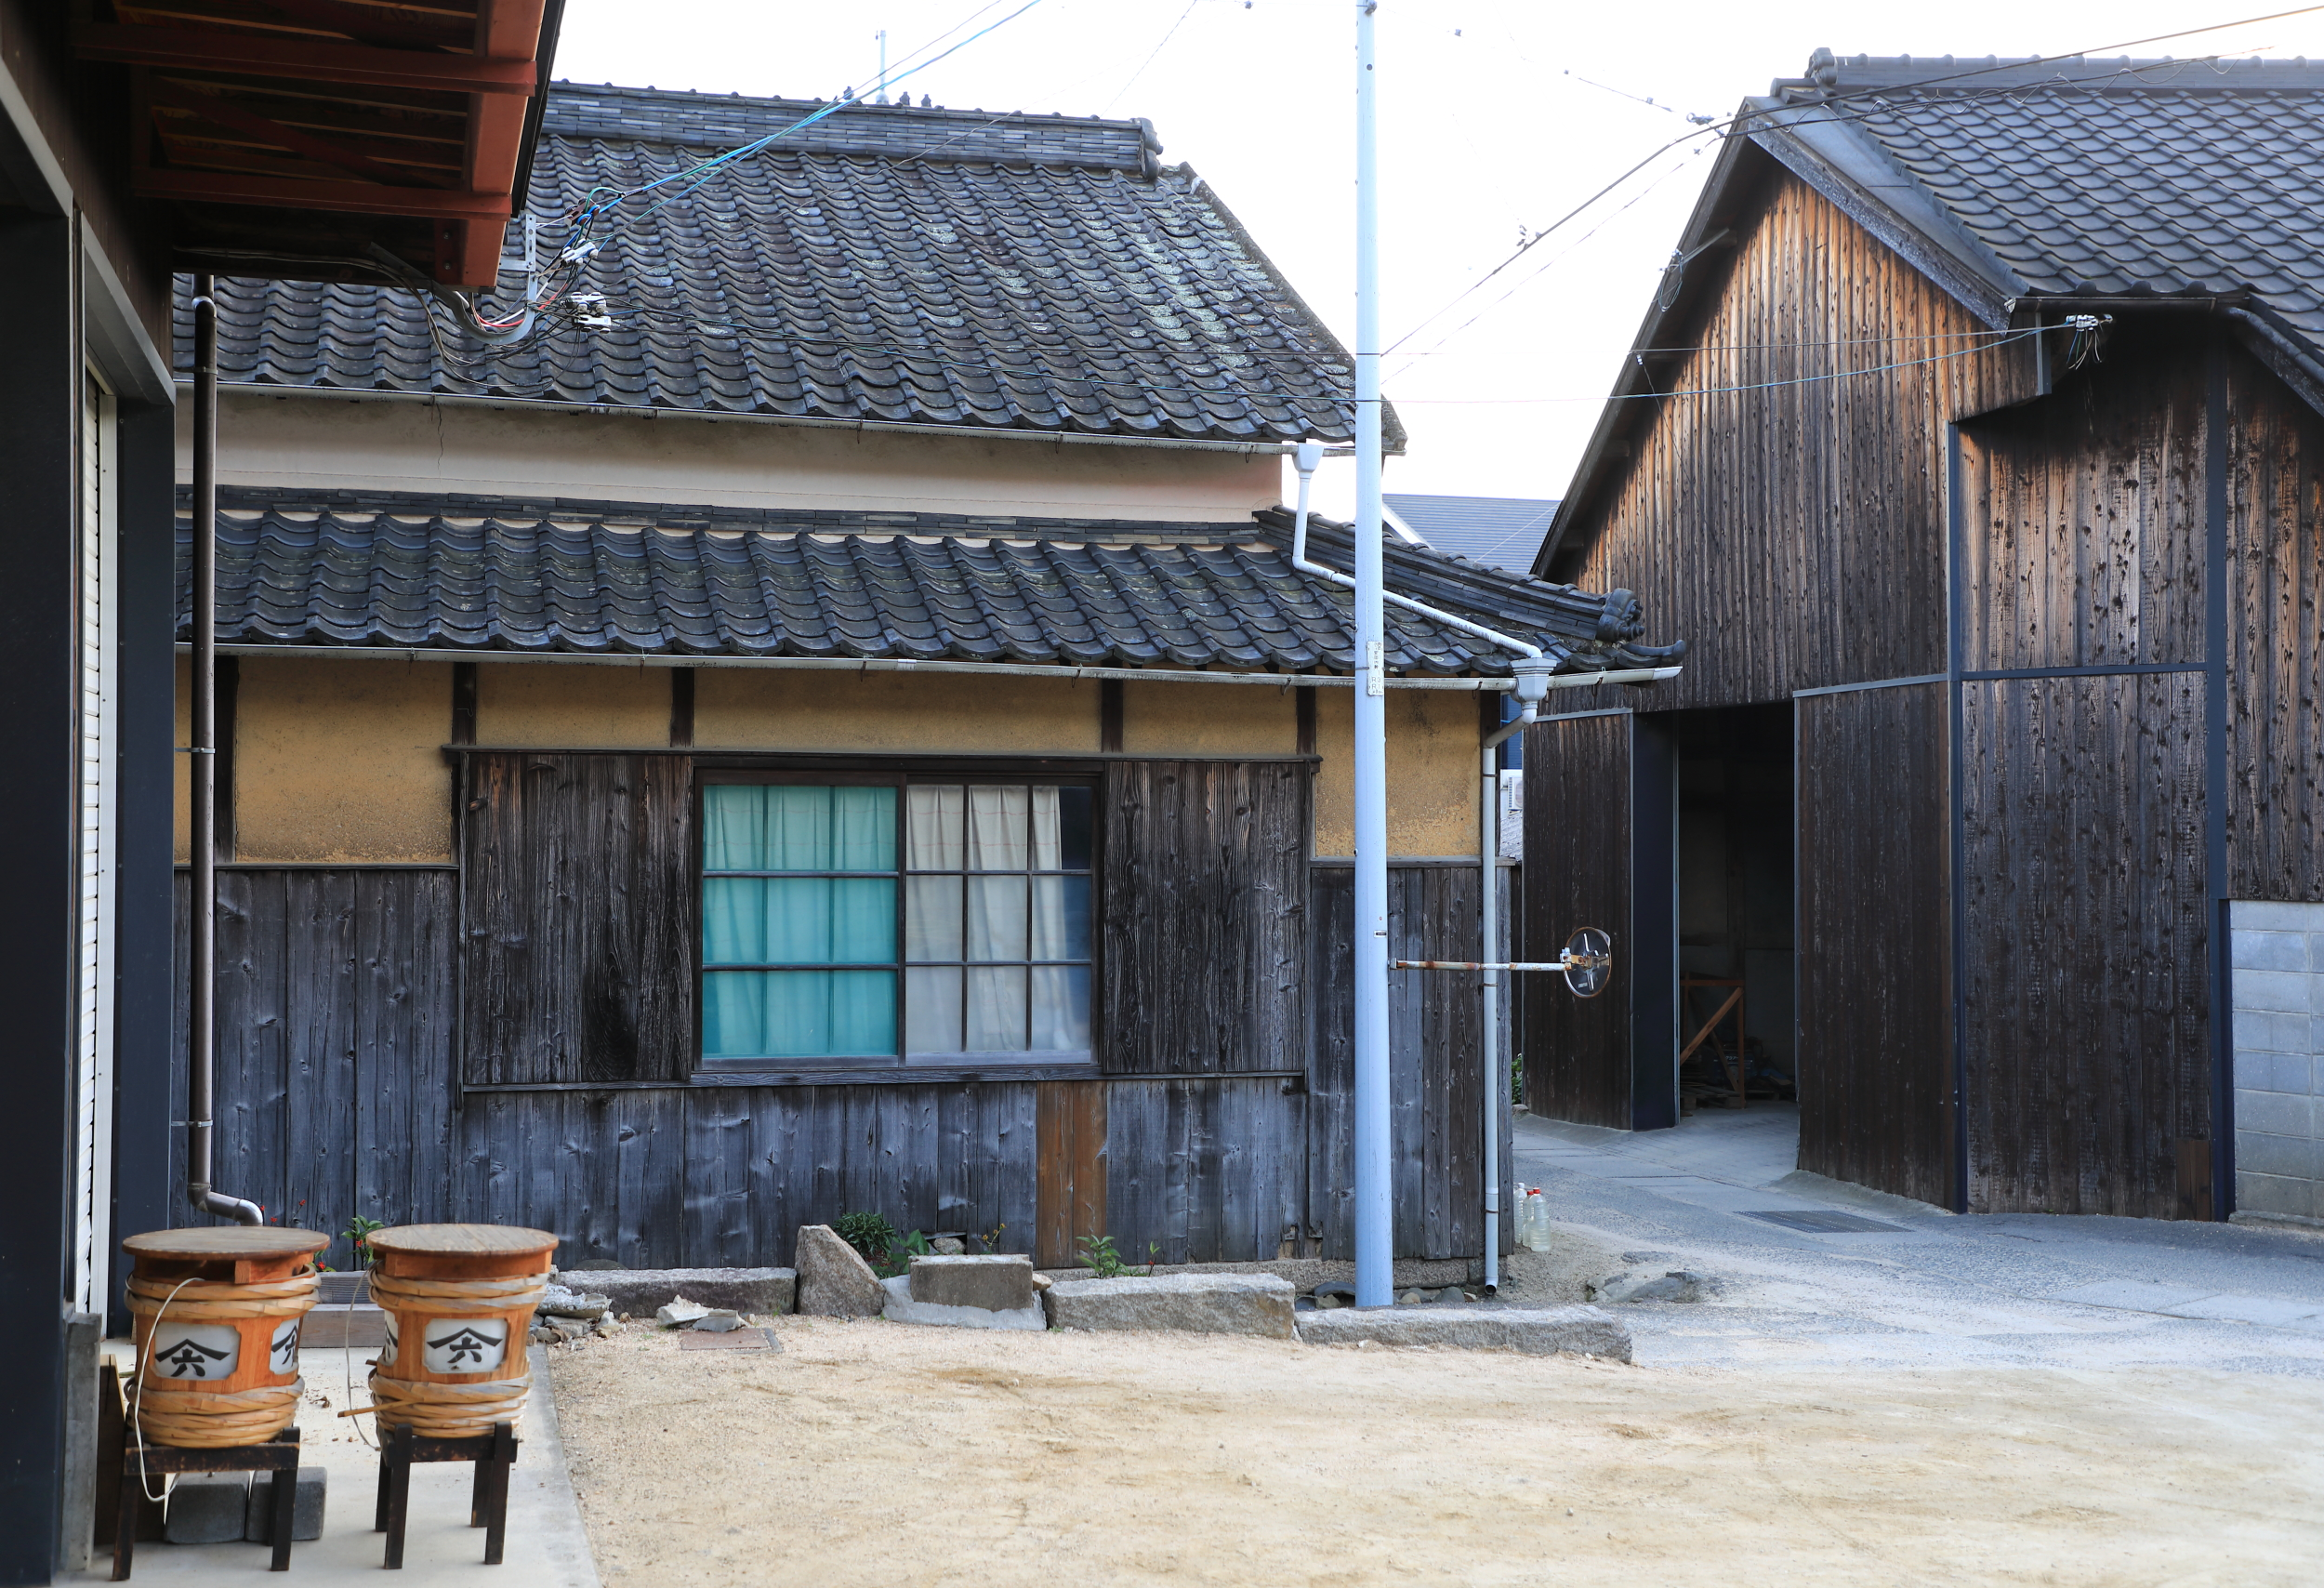 """Black walls at soy sauce breweries, like these at Yamaroku, are a sign of a prosperous business. The bacteria that create the color are the """"good"""" bacteria needed to ferment soy sauce. It also means the brewery is busy as the color immediately dissipates when business slows down or is stopped."""